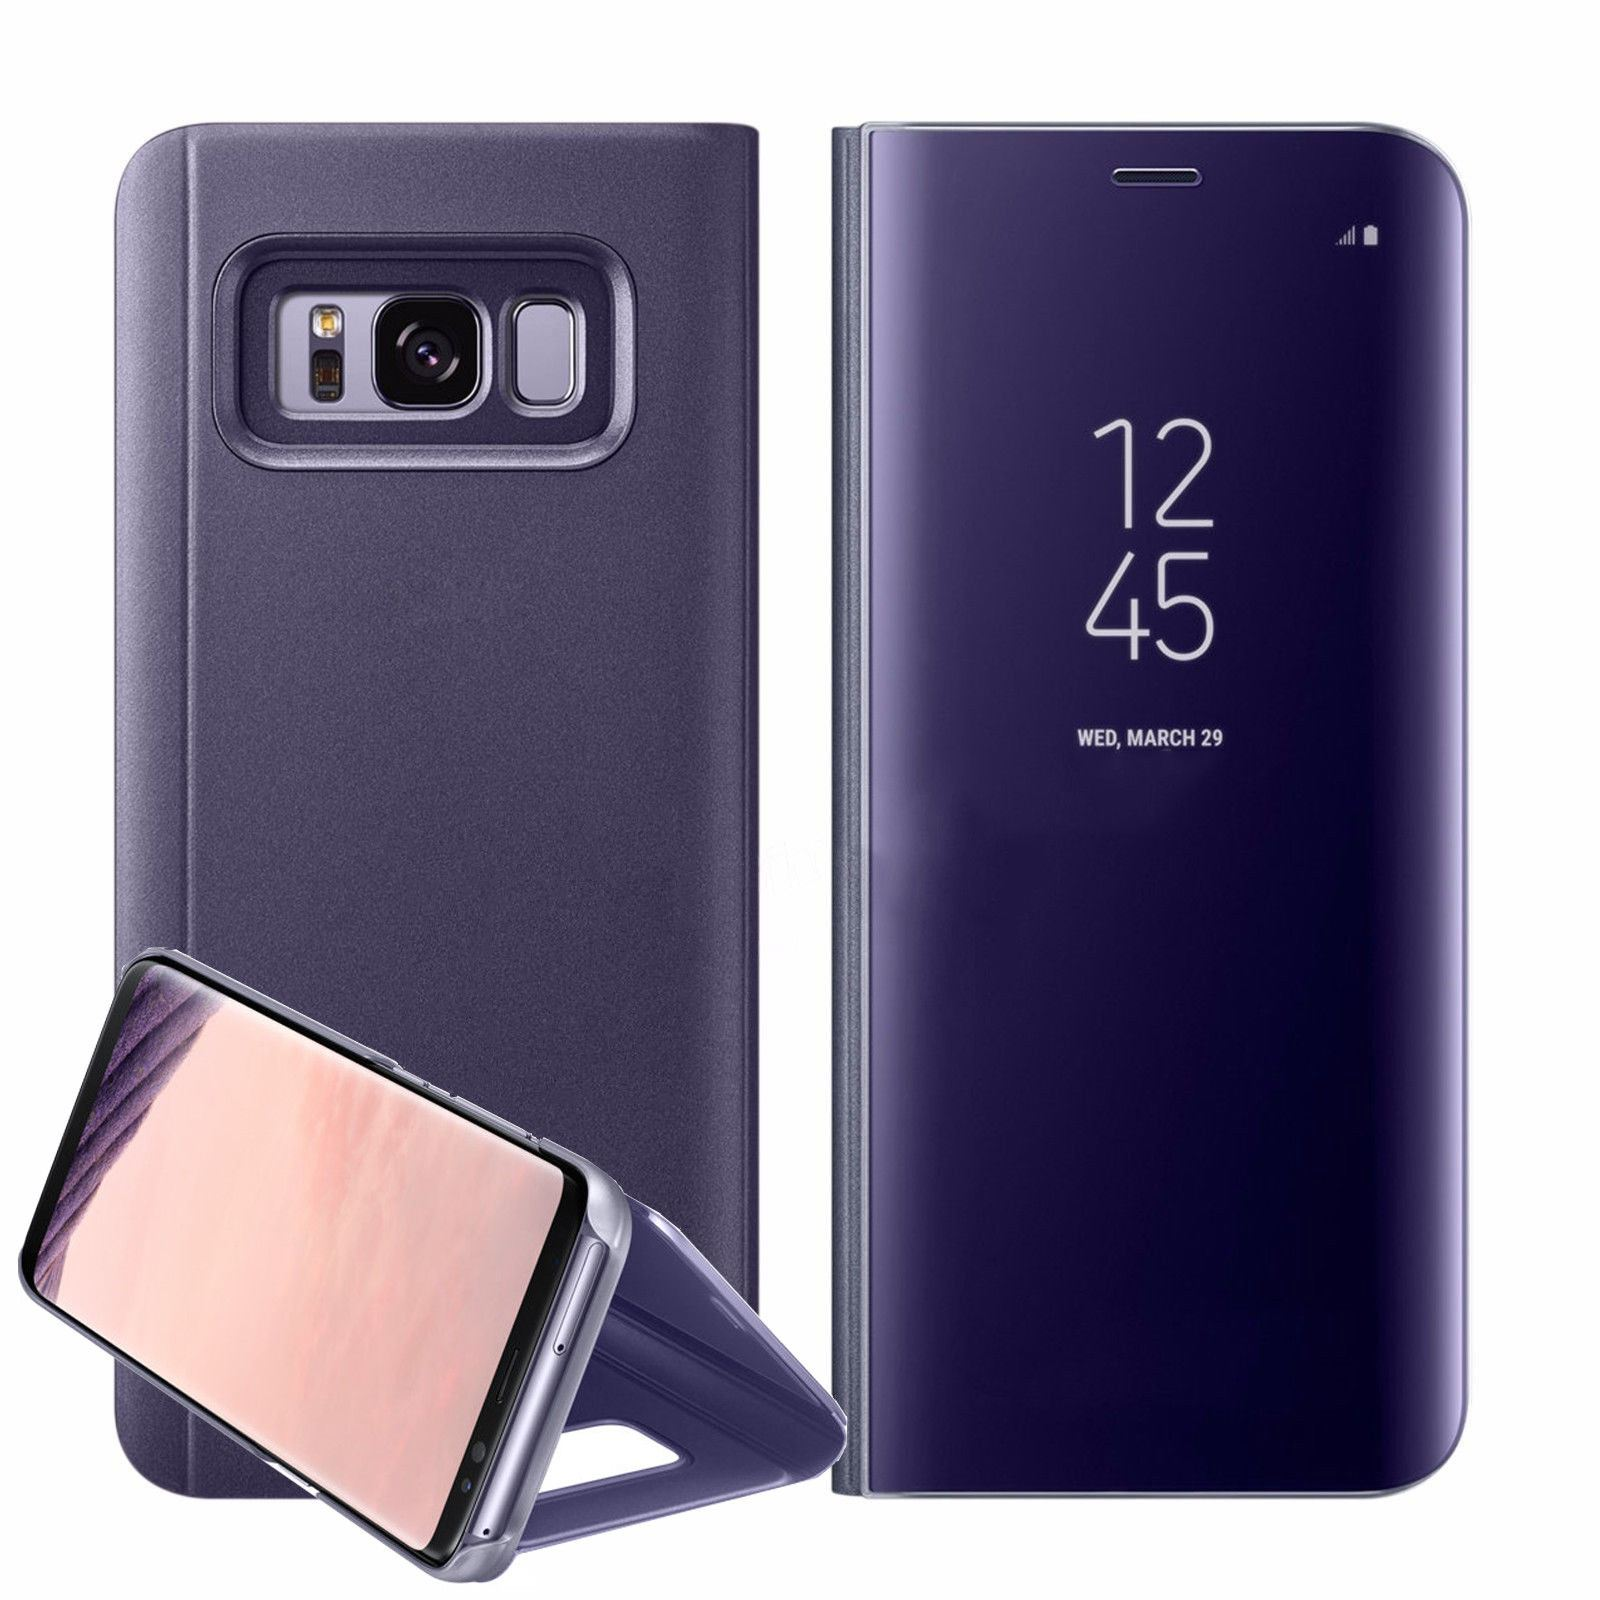 New-Samsung-Galaxy-S8-S9-S10-Smart-View-Mirror-Leather-Flip-Stand-Case-Cover thumbnail 30